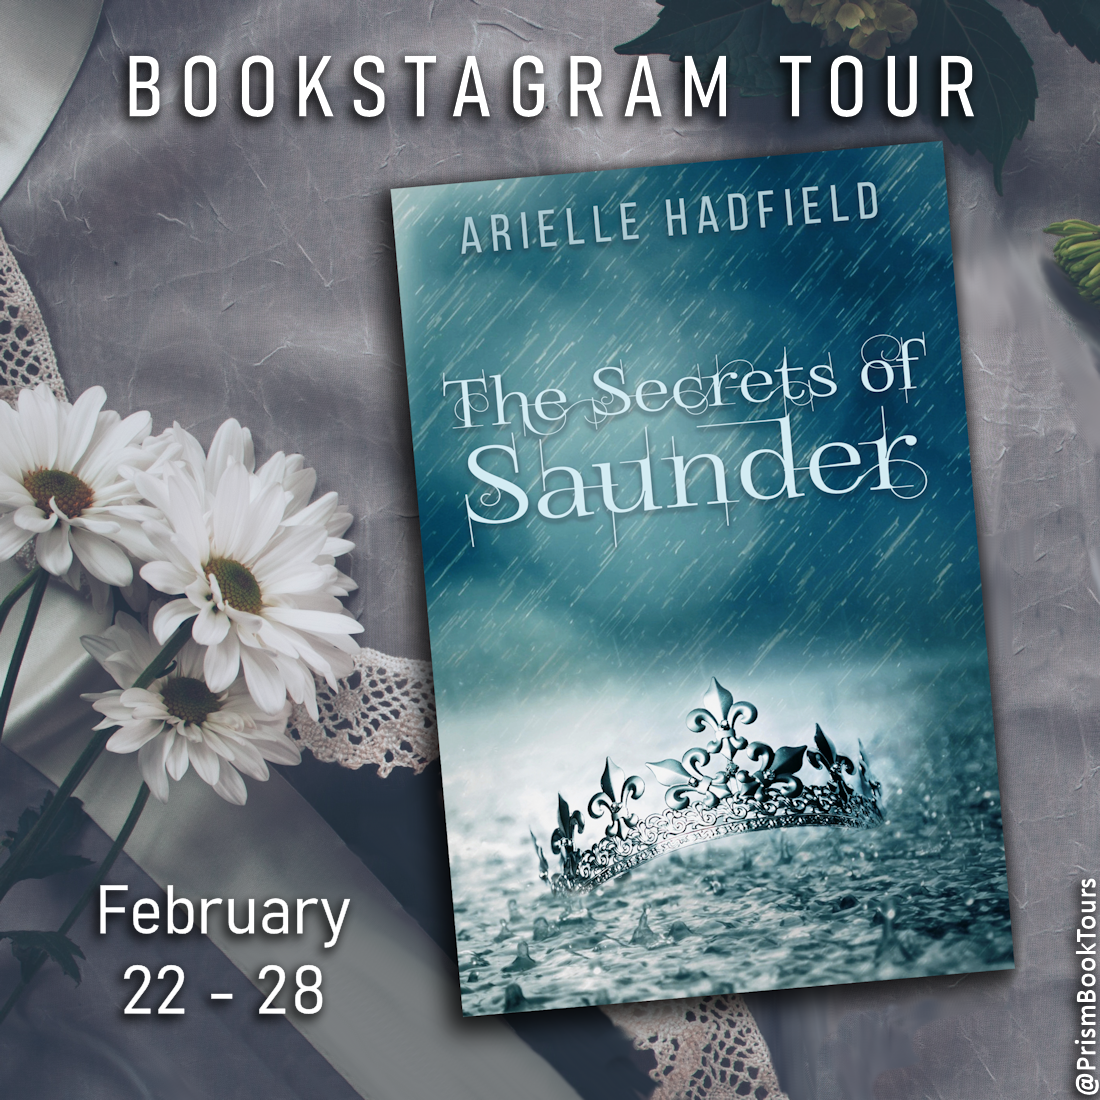 Check out the Bookstagram Tour for THE SECRETS OF SAUNDER by Arielle Hadfield!